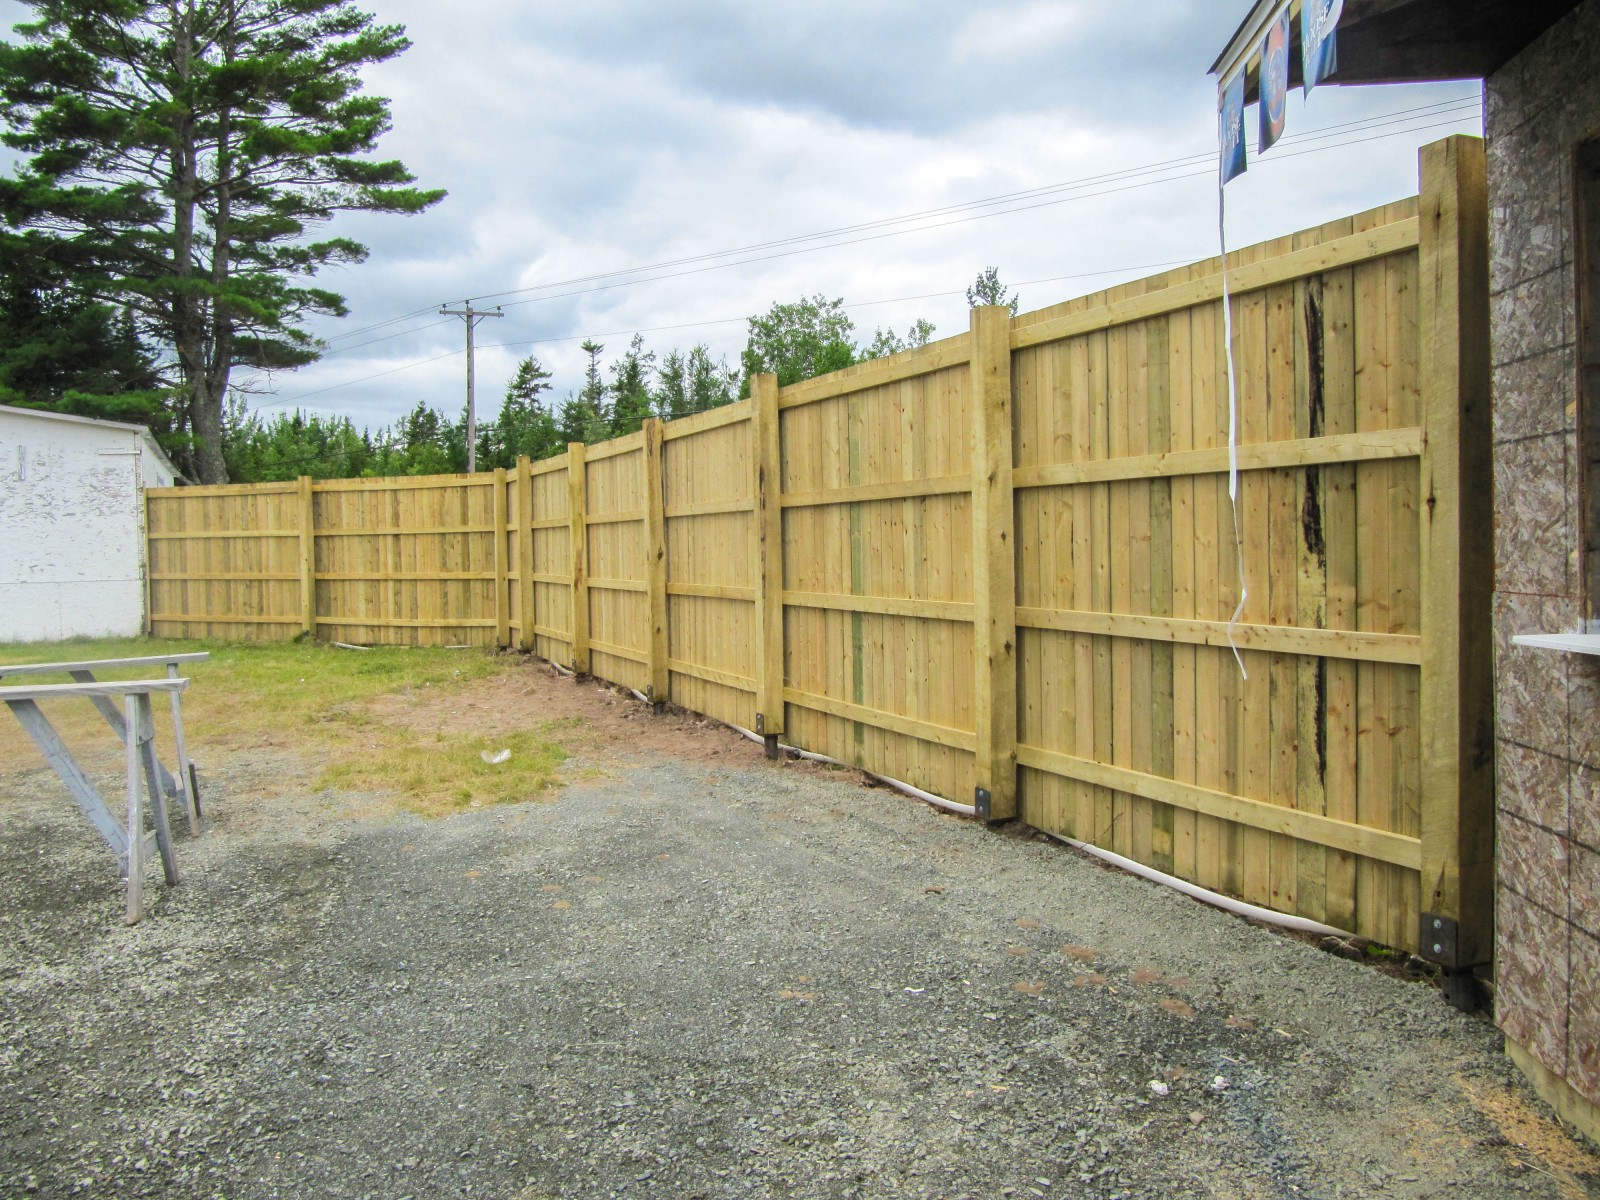 Screw piles on the fence: installation and installation 20